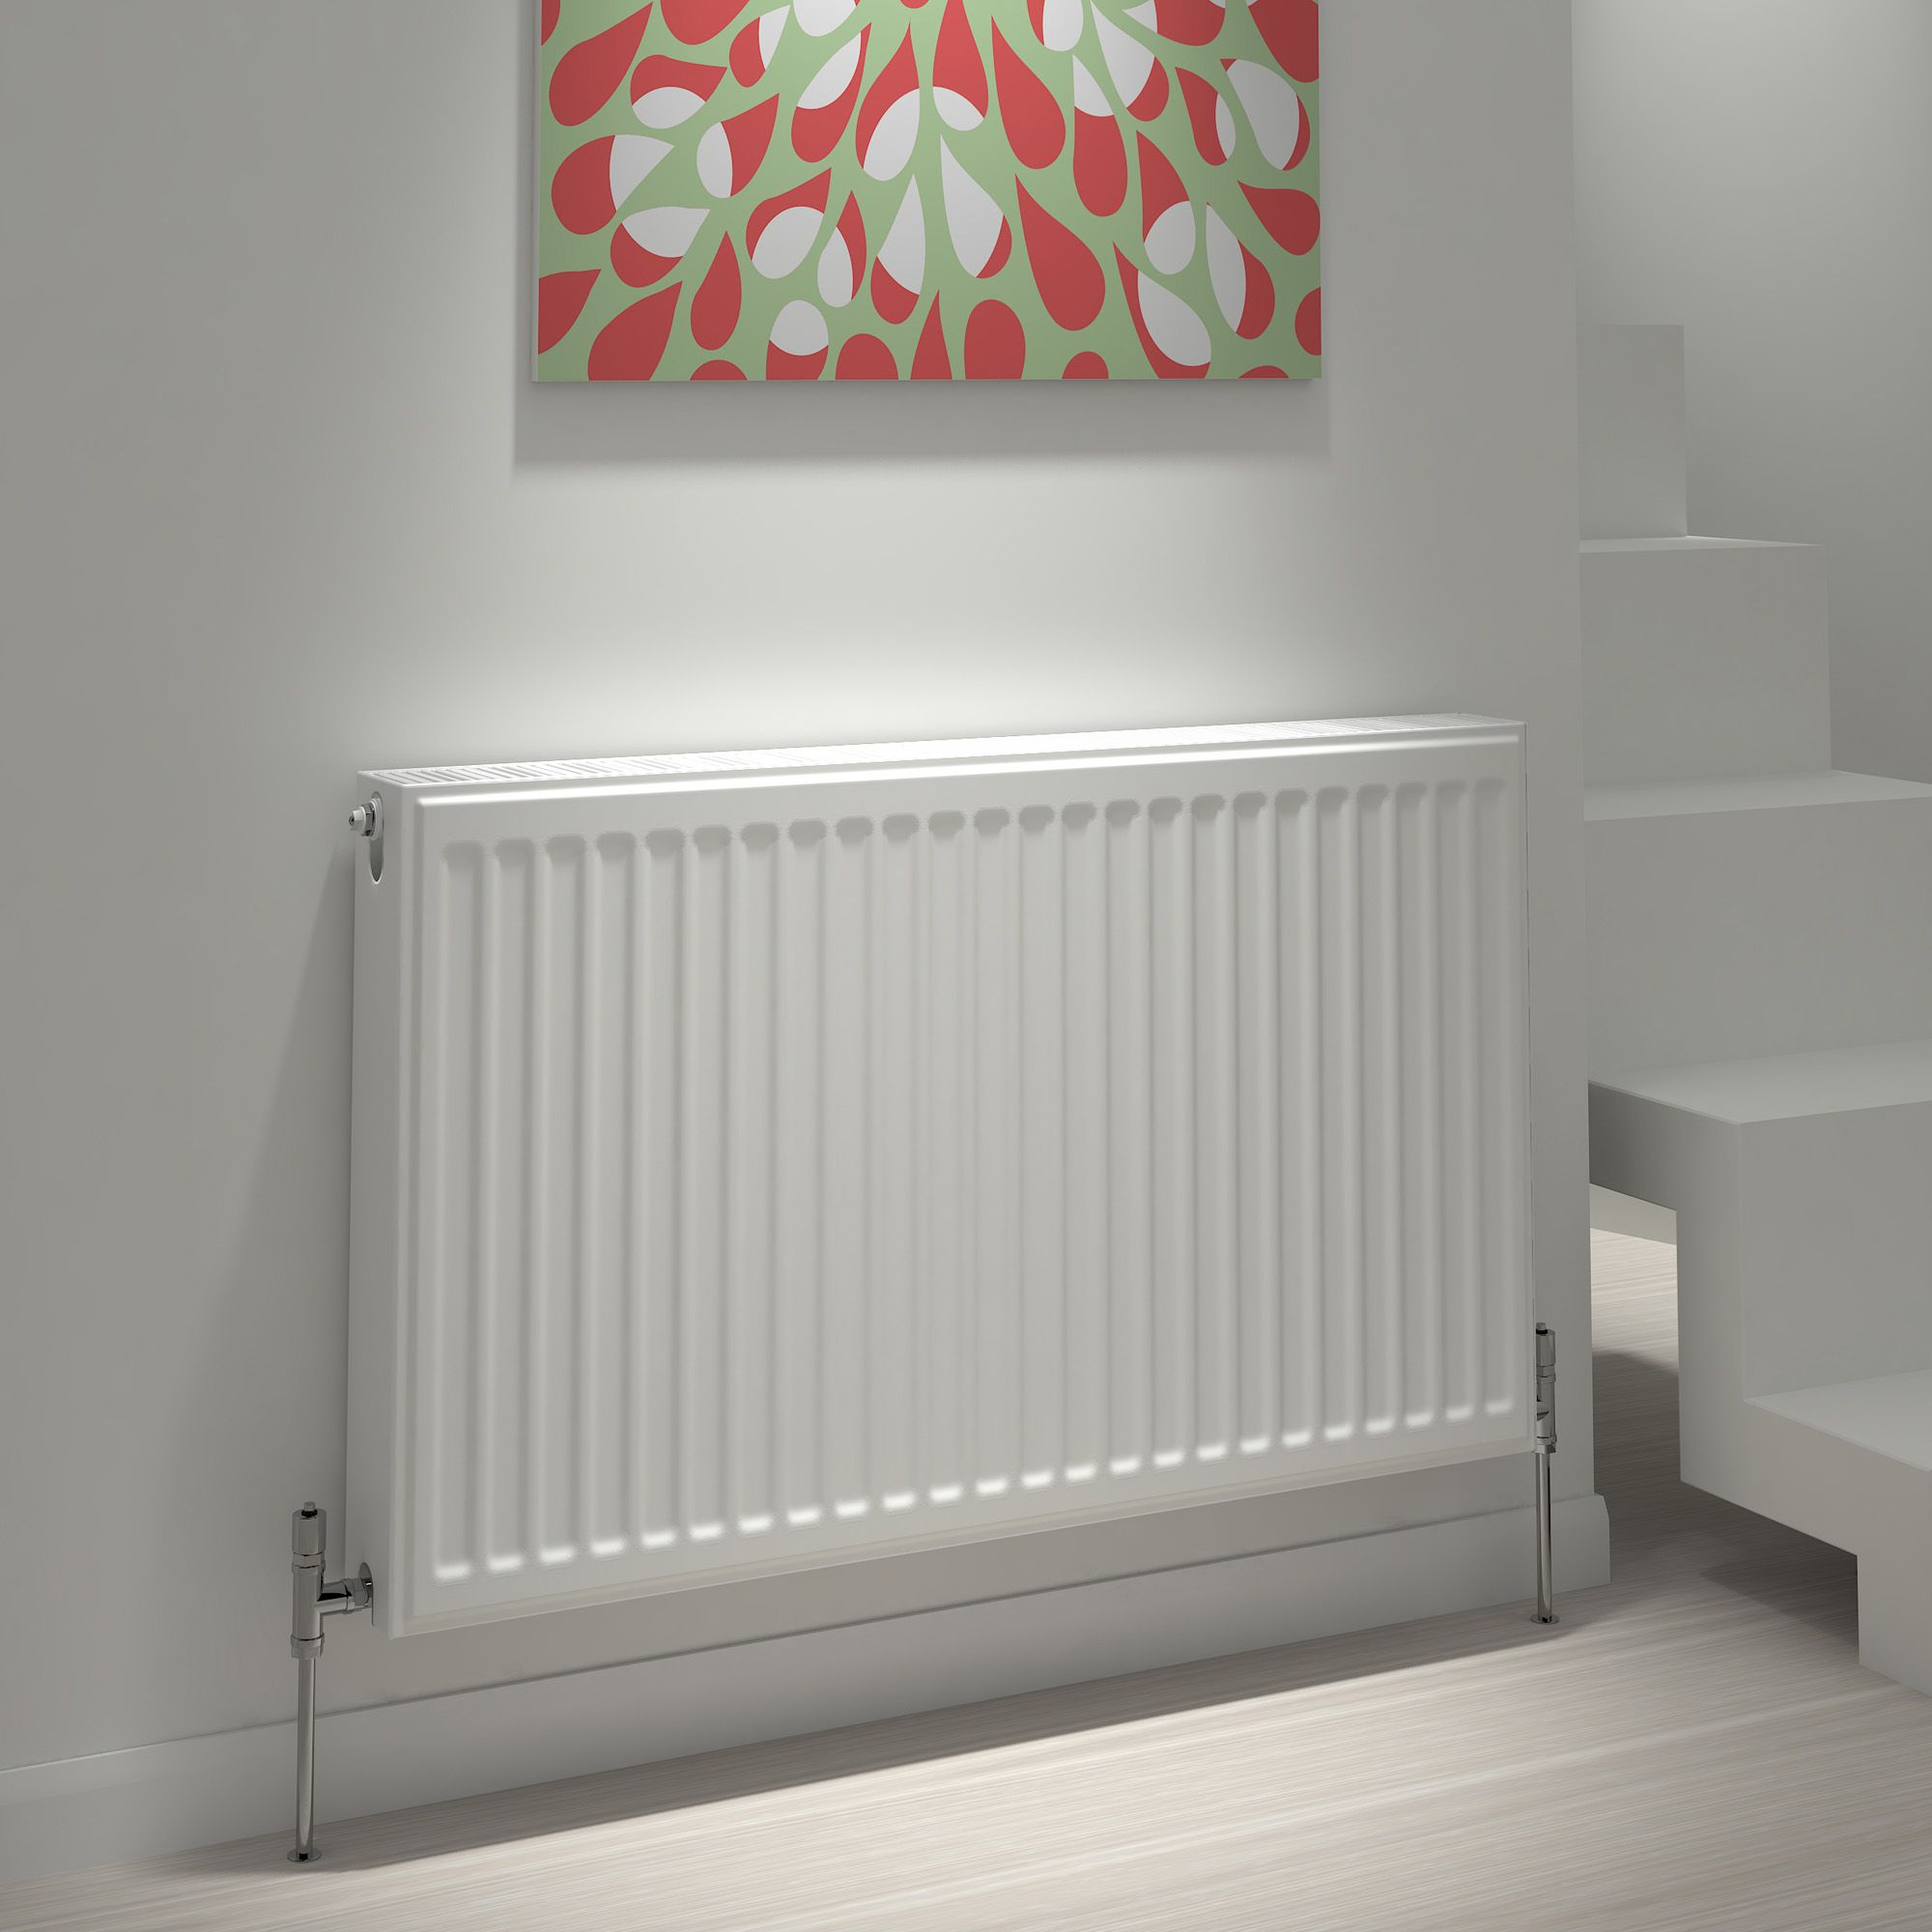 Kudox Type 11 single Panel radiator White, (H)600mm